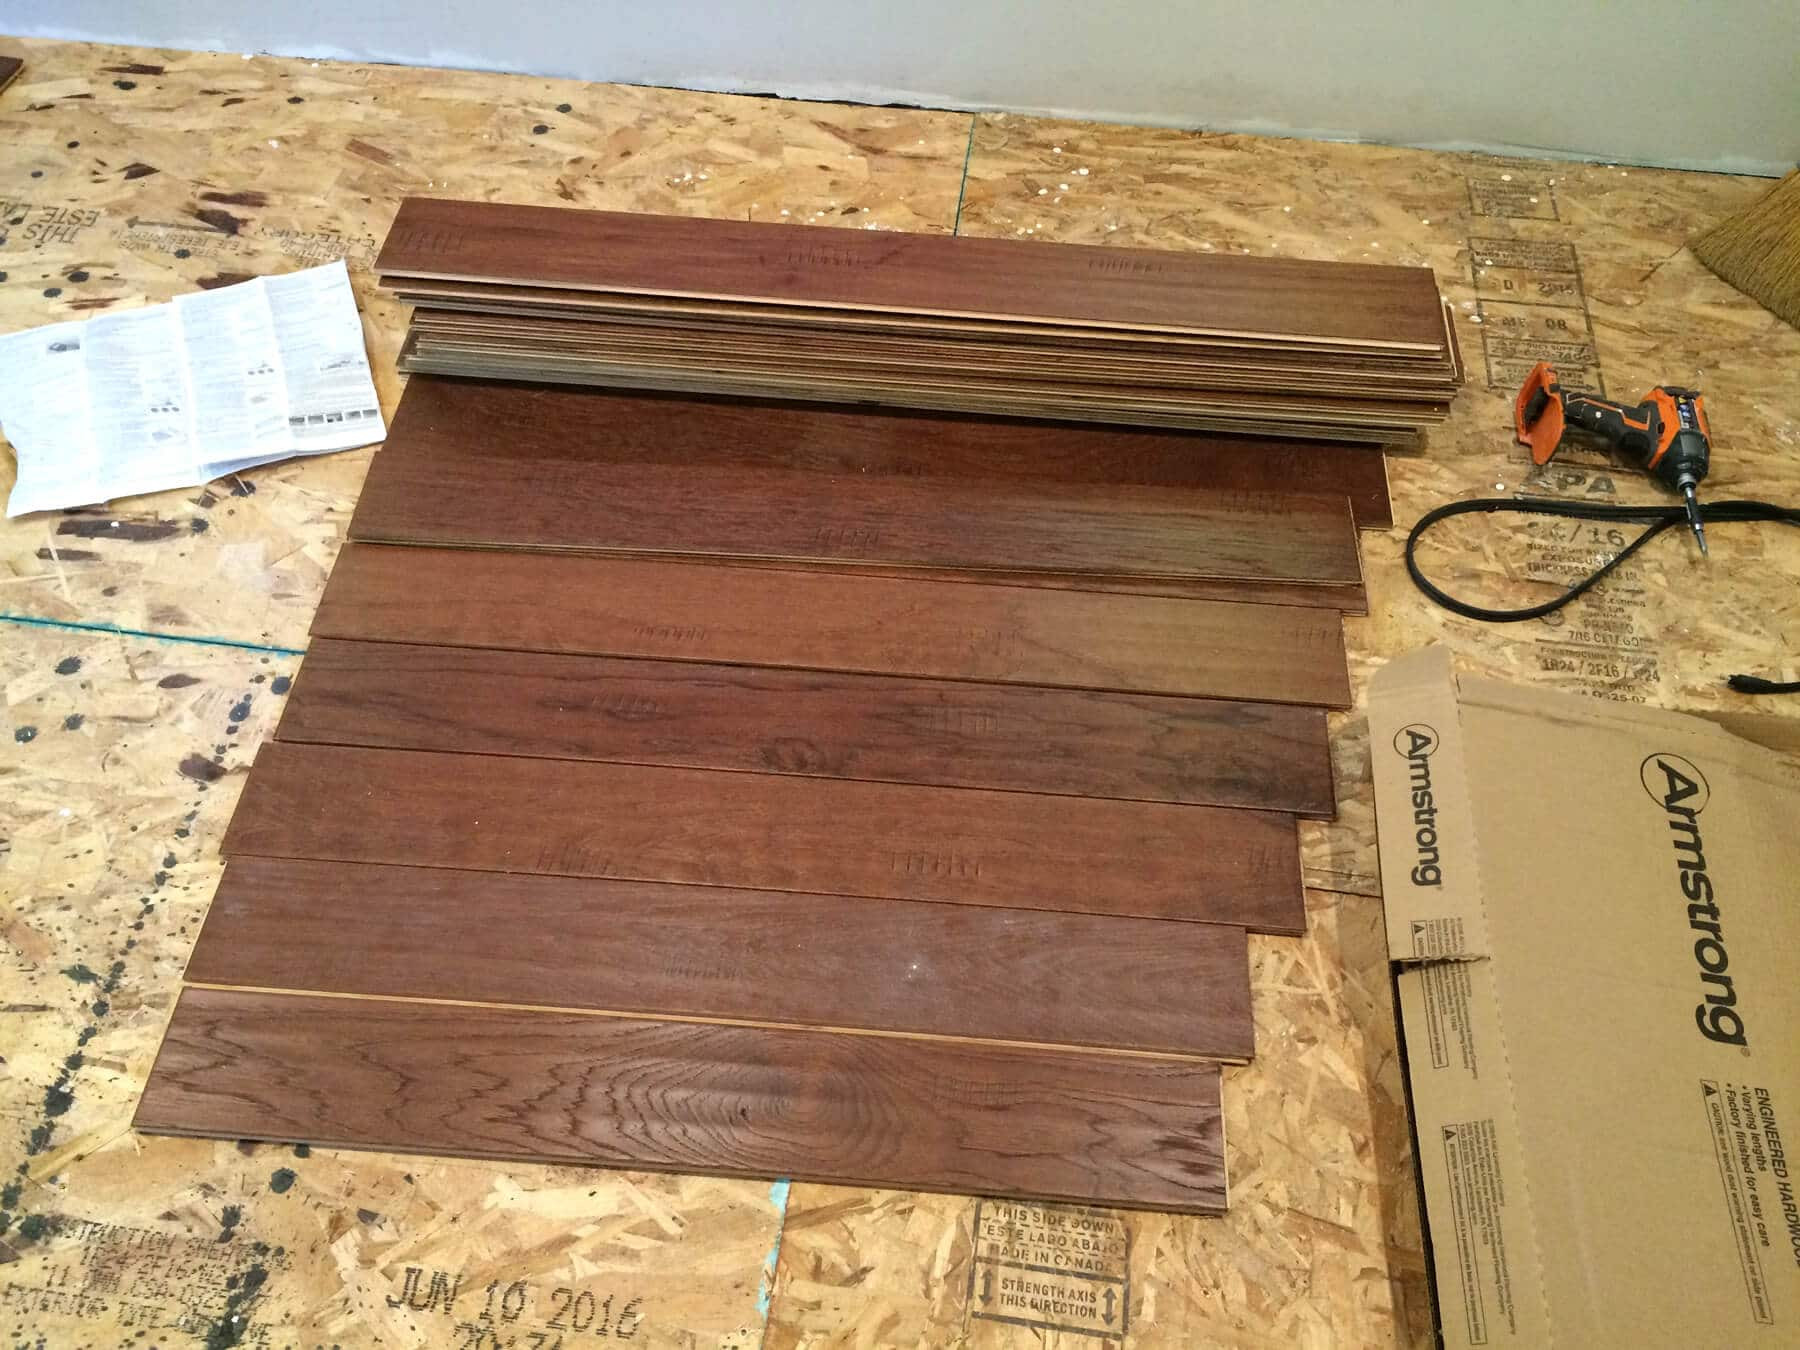 how to install hardwood flooring on plywood of the micro dwelling project part 5 flooring the daring gourmet for laying down the sub flooring was fine but honestly the thought of installing hardwood floors seemed extremely intimidating we were pretty nervous going in